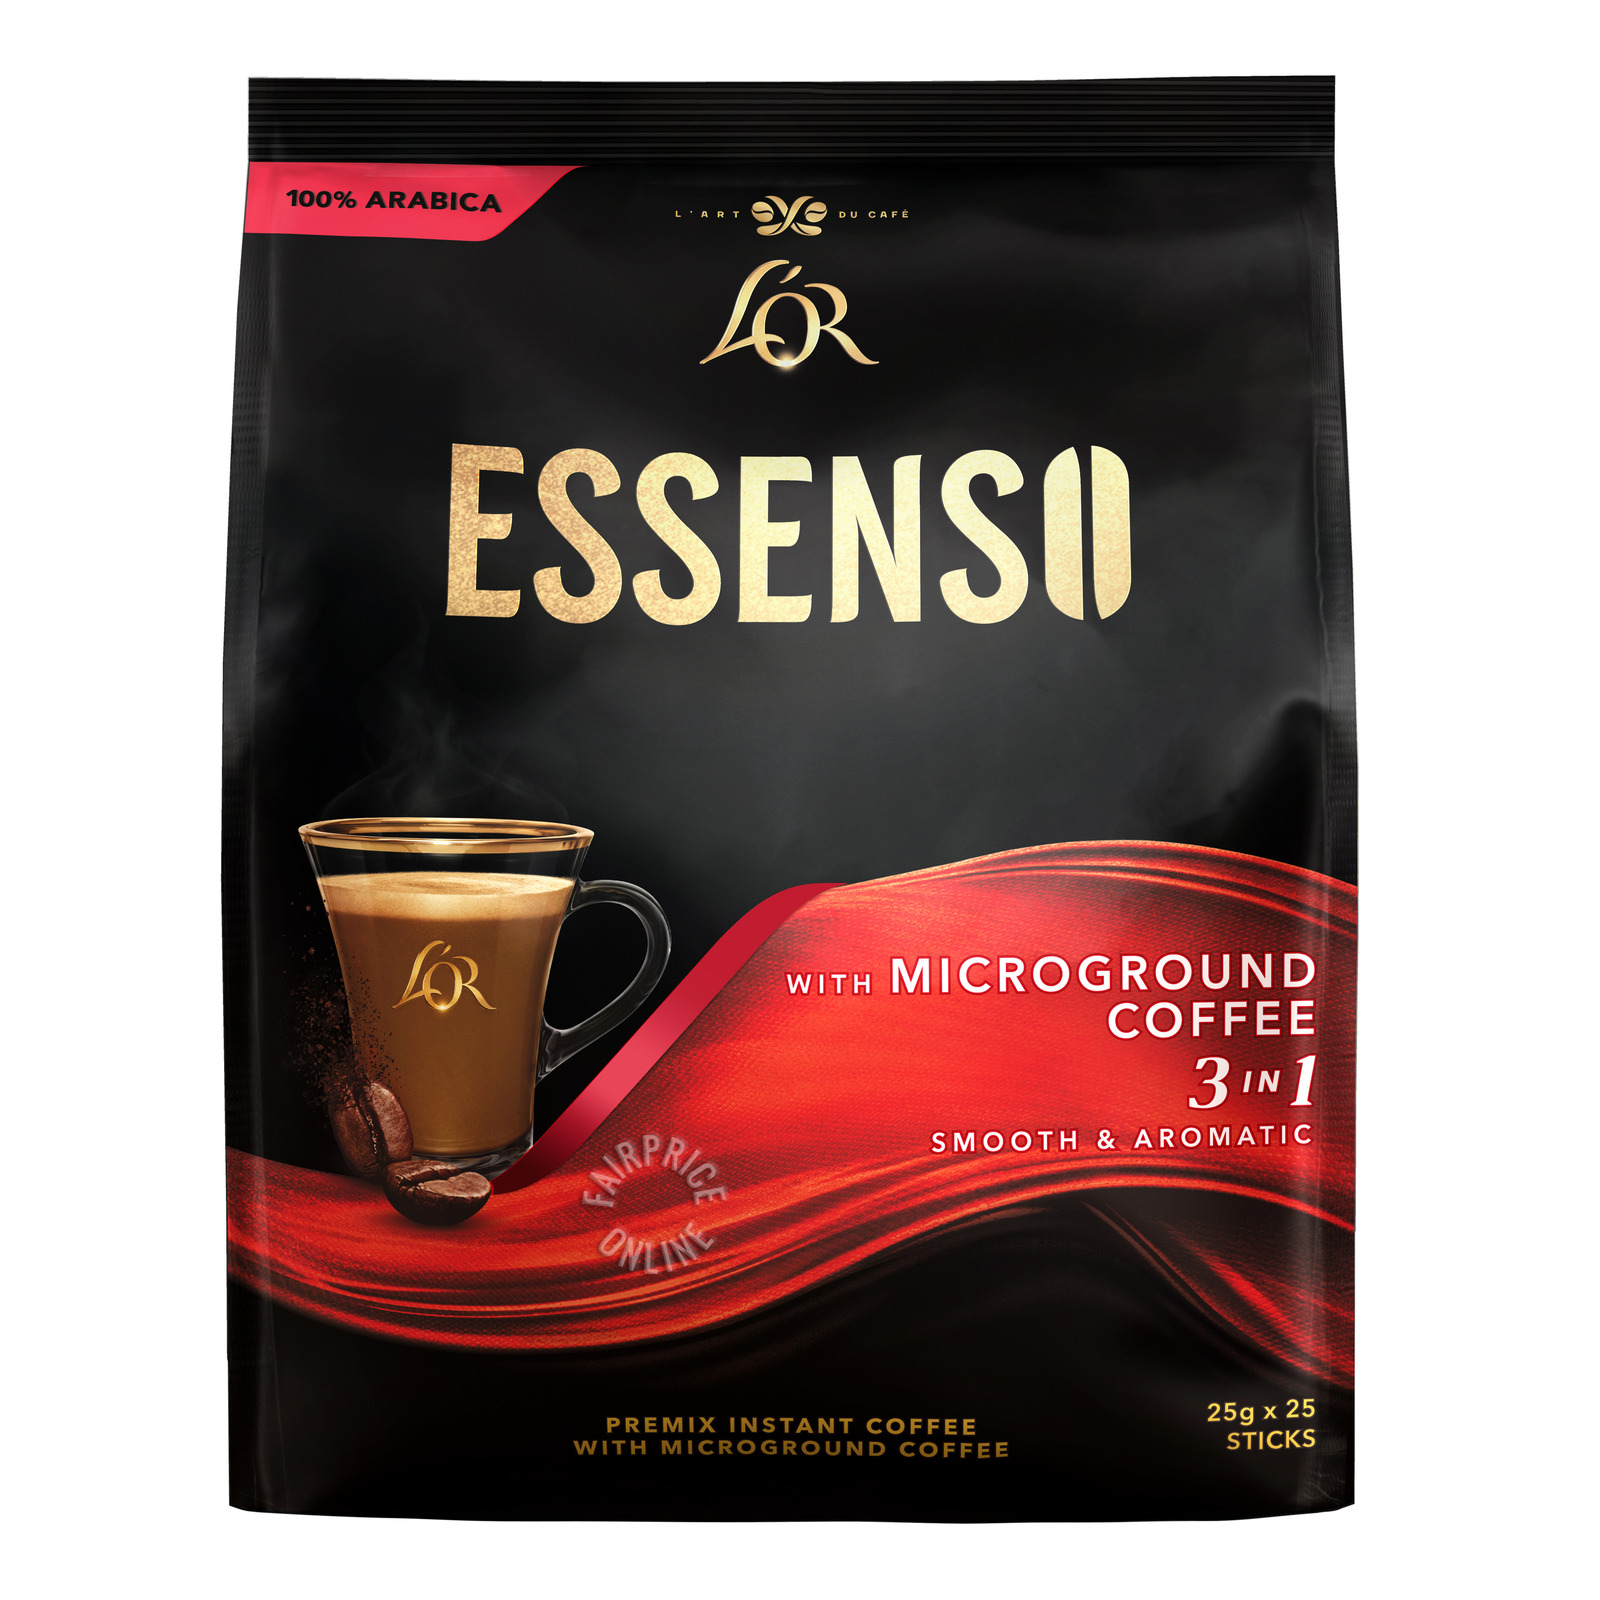 Super 3 in 1 Instant Microground Coffee - Essenso